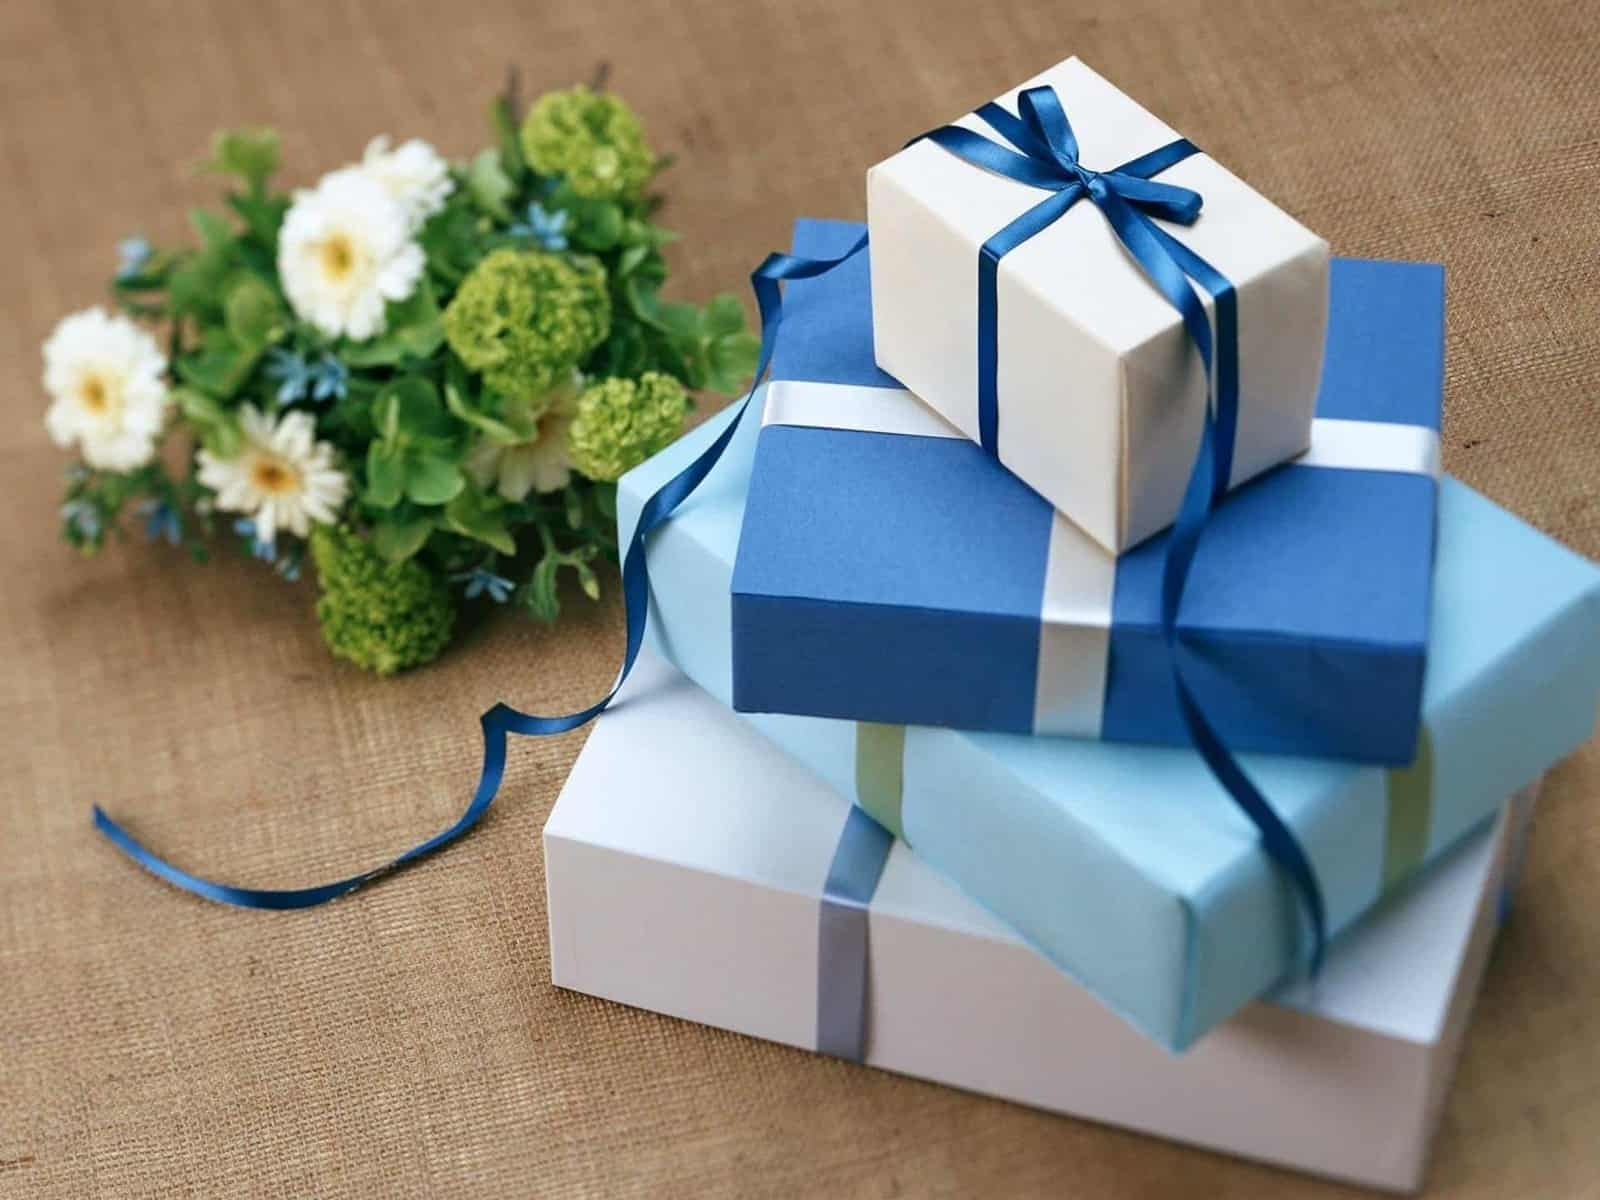 25+ Best Gift Ideas for Every Family Member [$25 Or Less!]